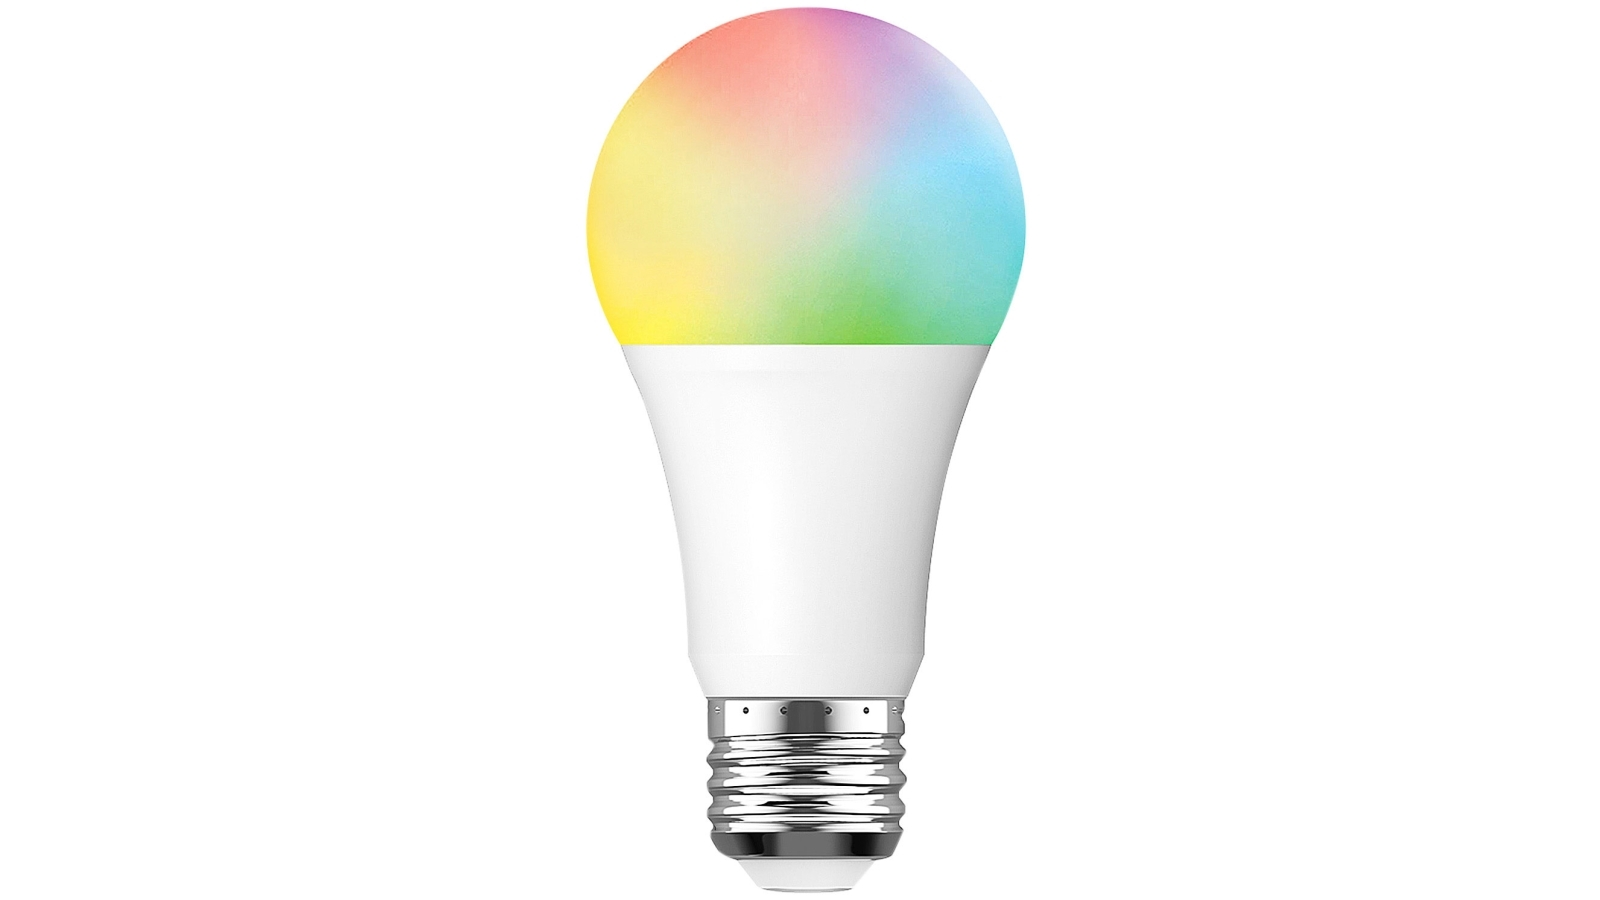 Buy Connect Smart 10w E27 Rgb Led Light Bulb Harvey Norman Au